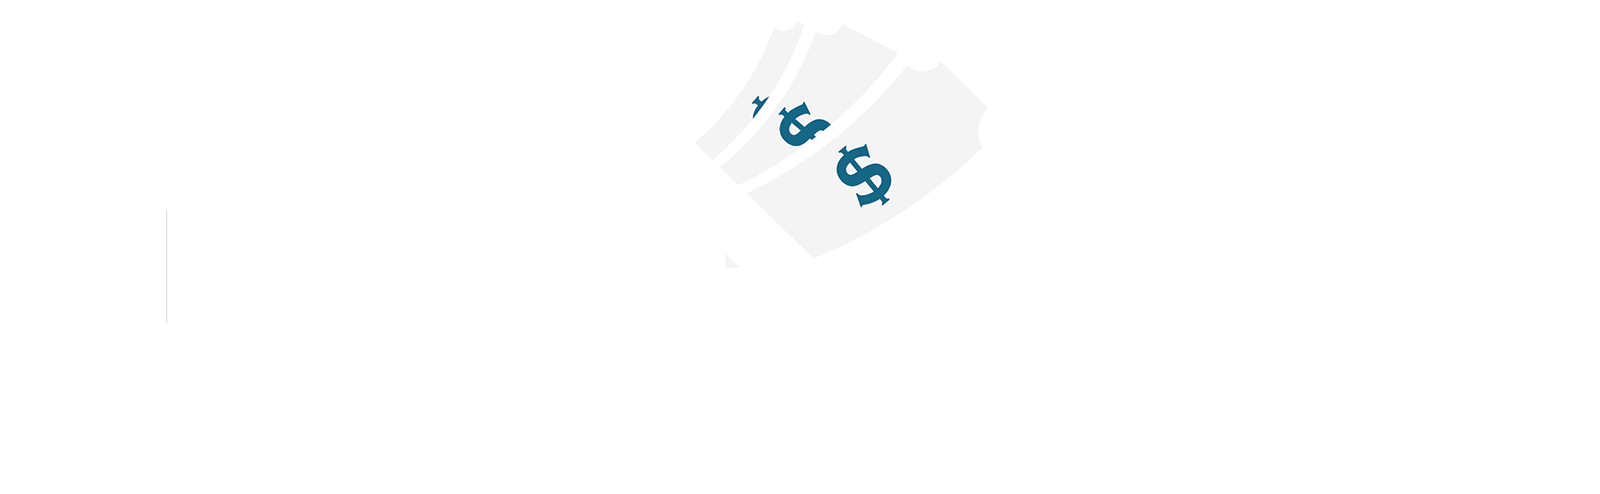 rebates for home buyers logo - get a home buyer rebate when using one of our buyer's age